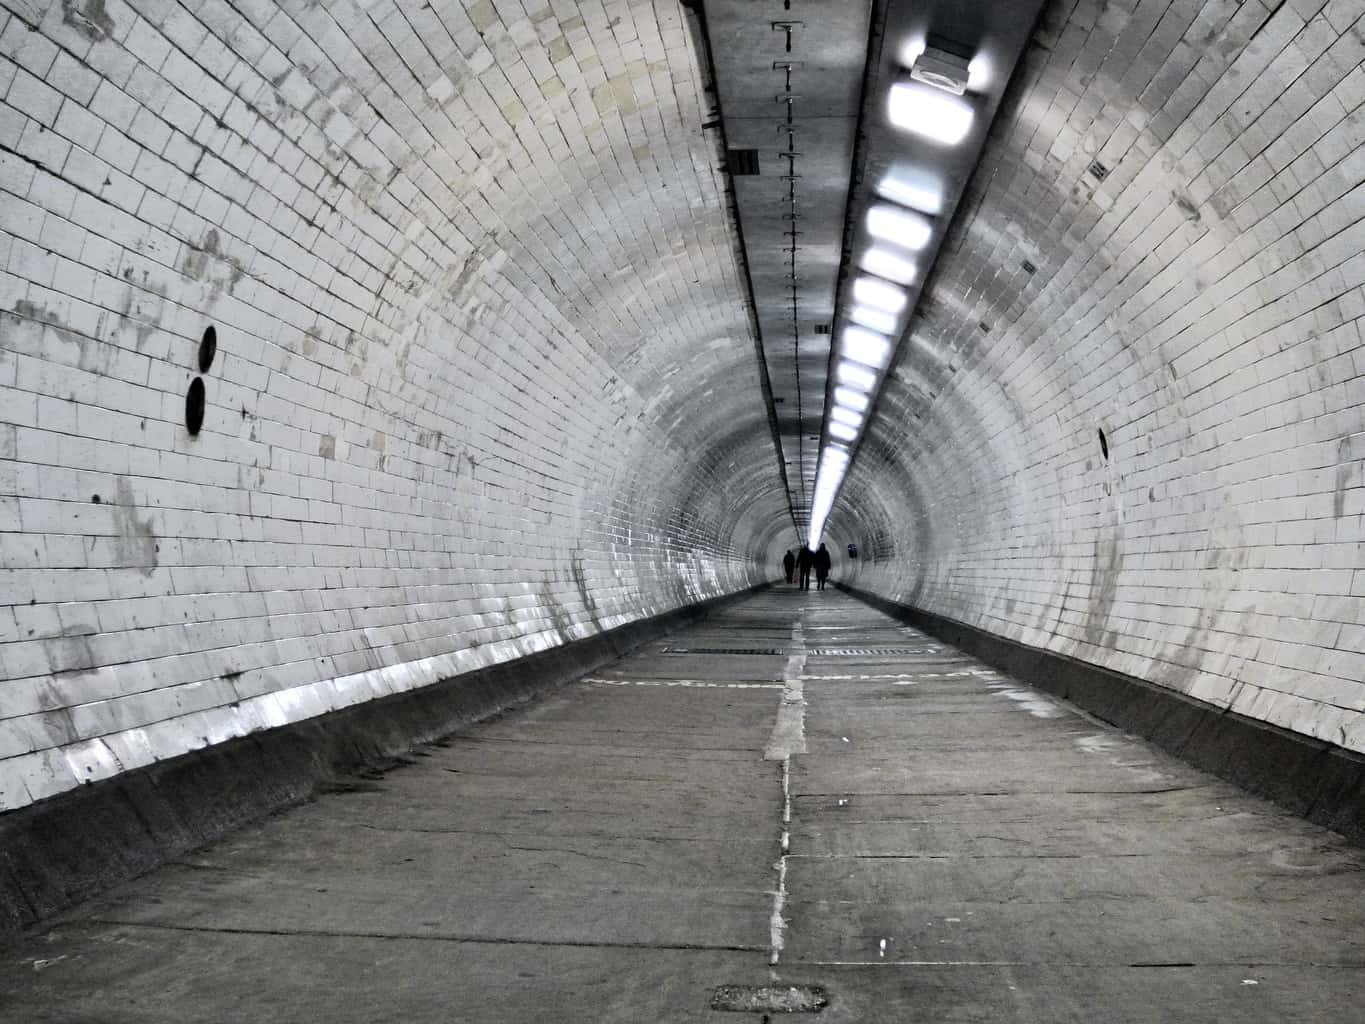 An almost empty London Underground passage with people right at the end